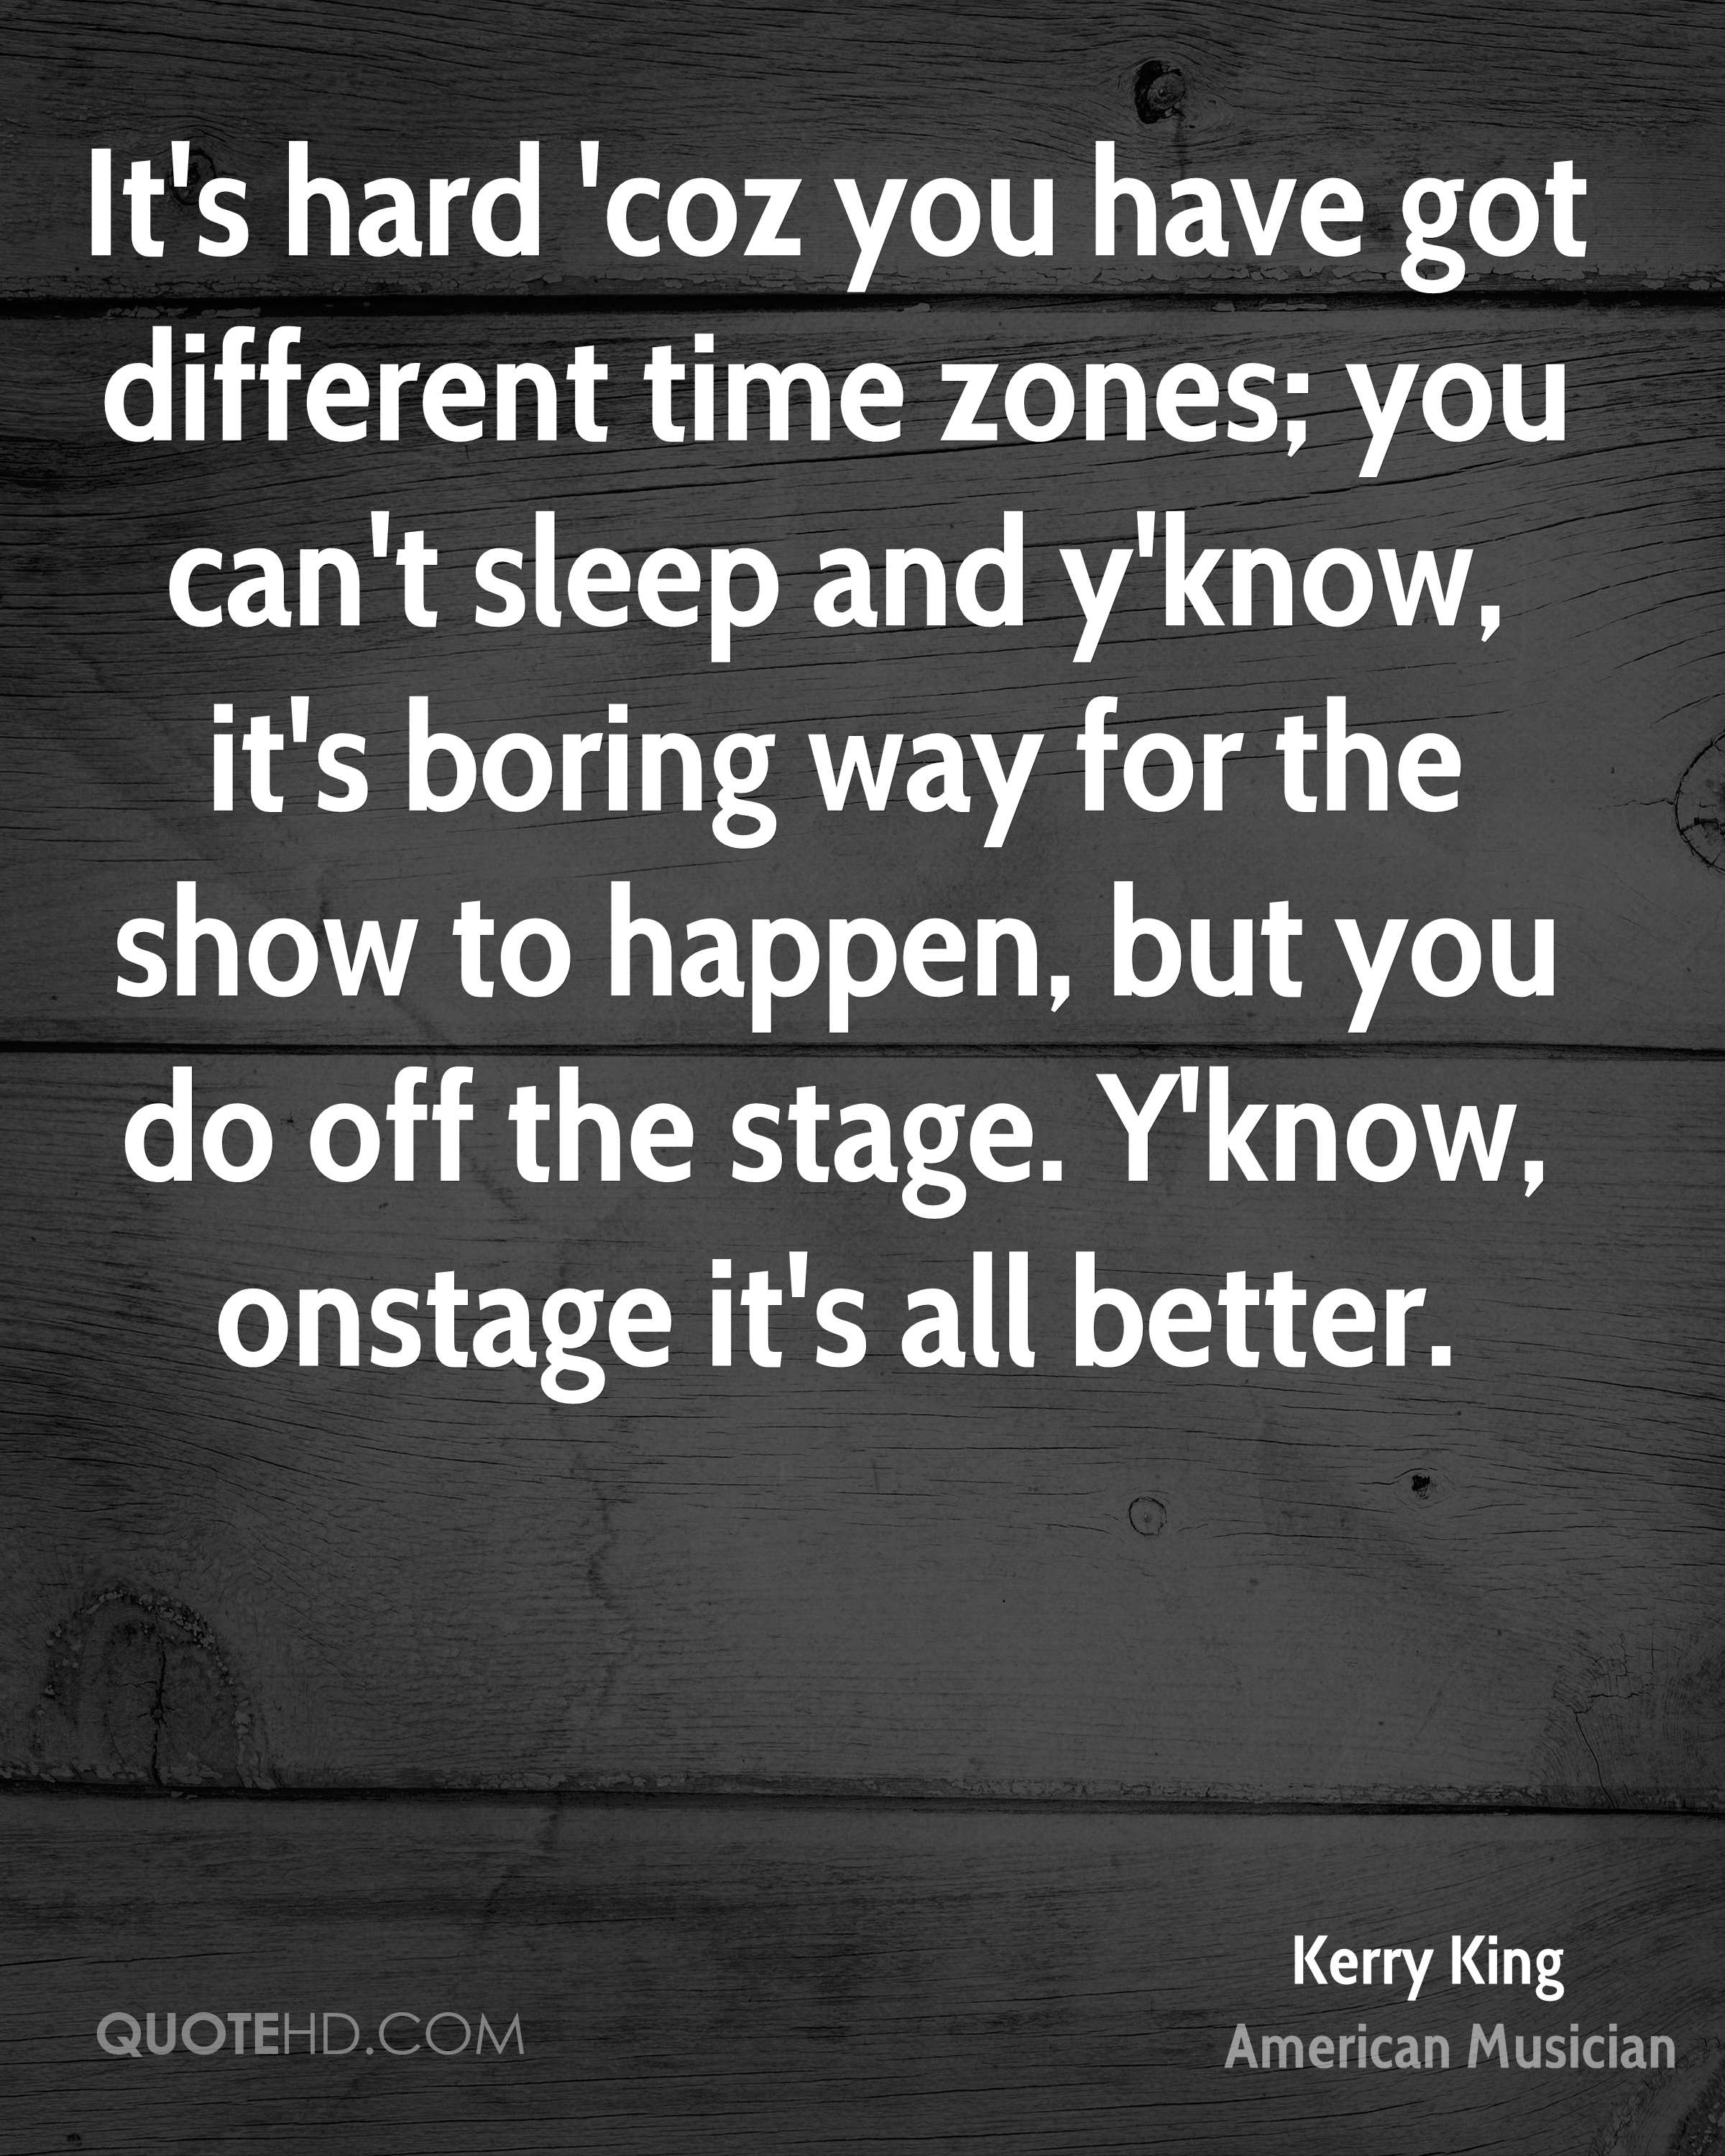 It's hard 'coz you have got different time zones; you can't sleep and y'know, it's boring way for the show to happen, but you do off the stage. Y'know, onstage it's all better.